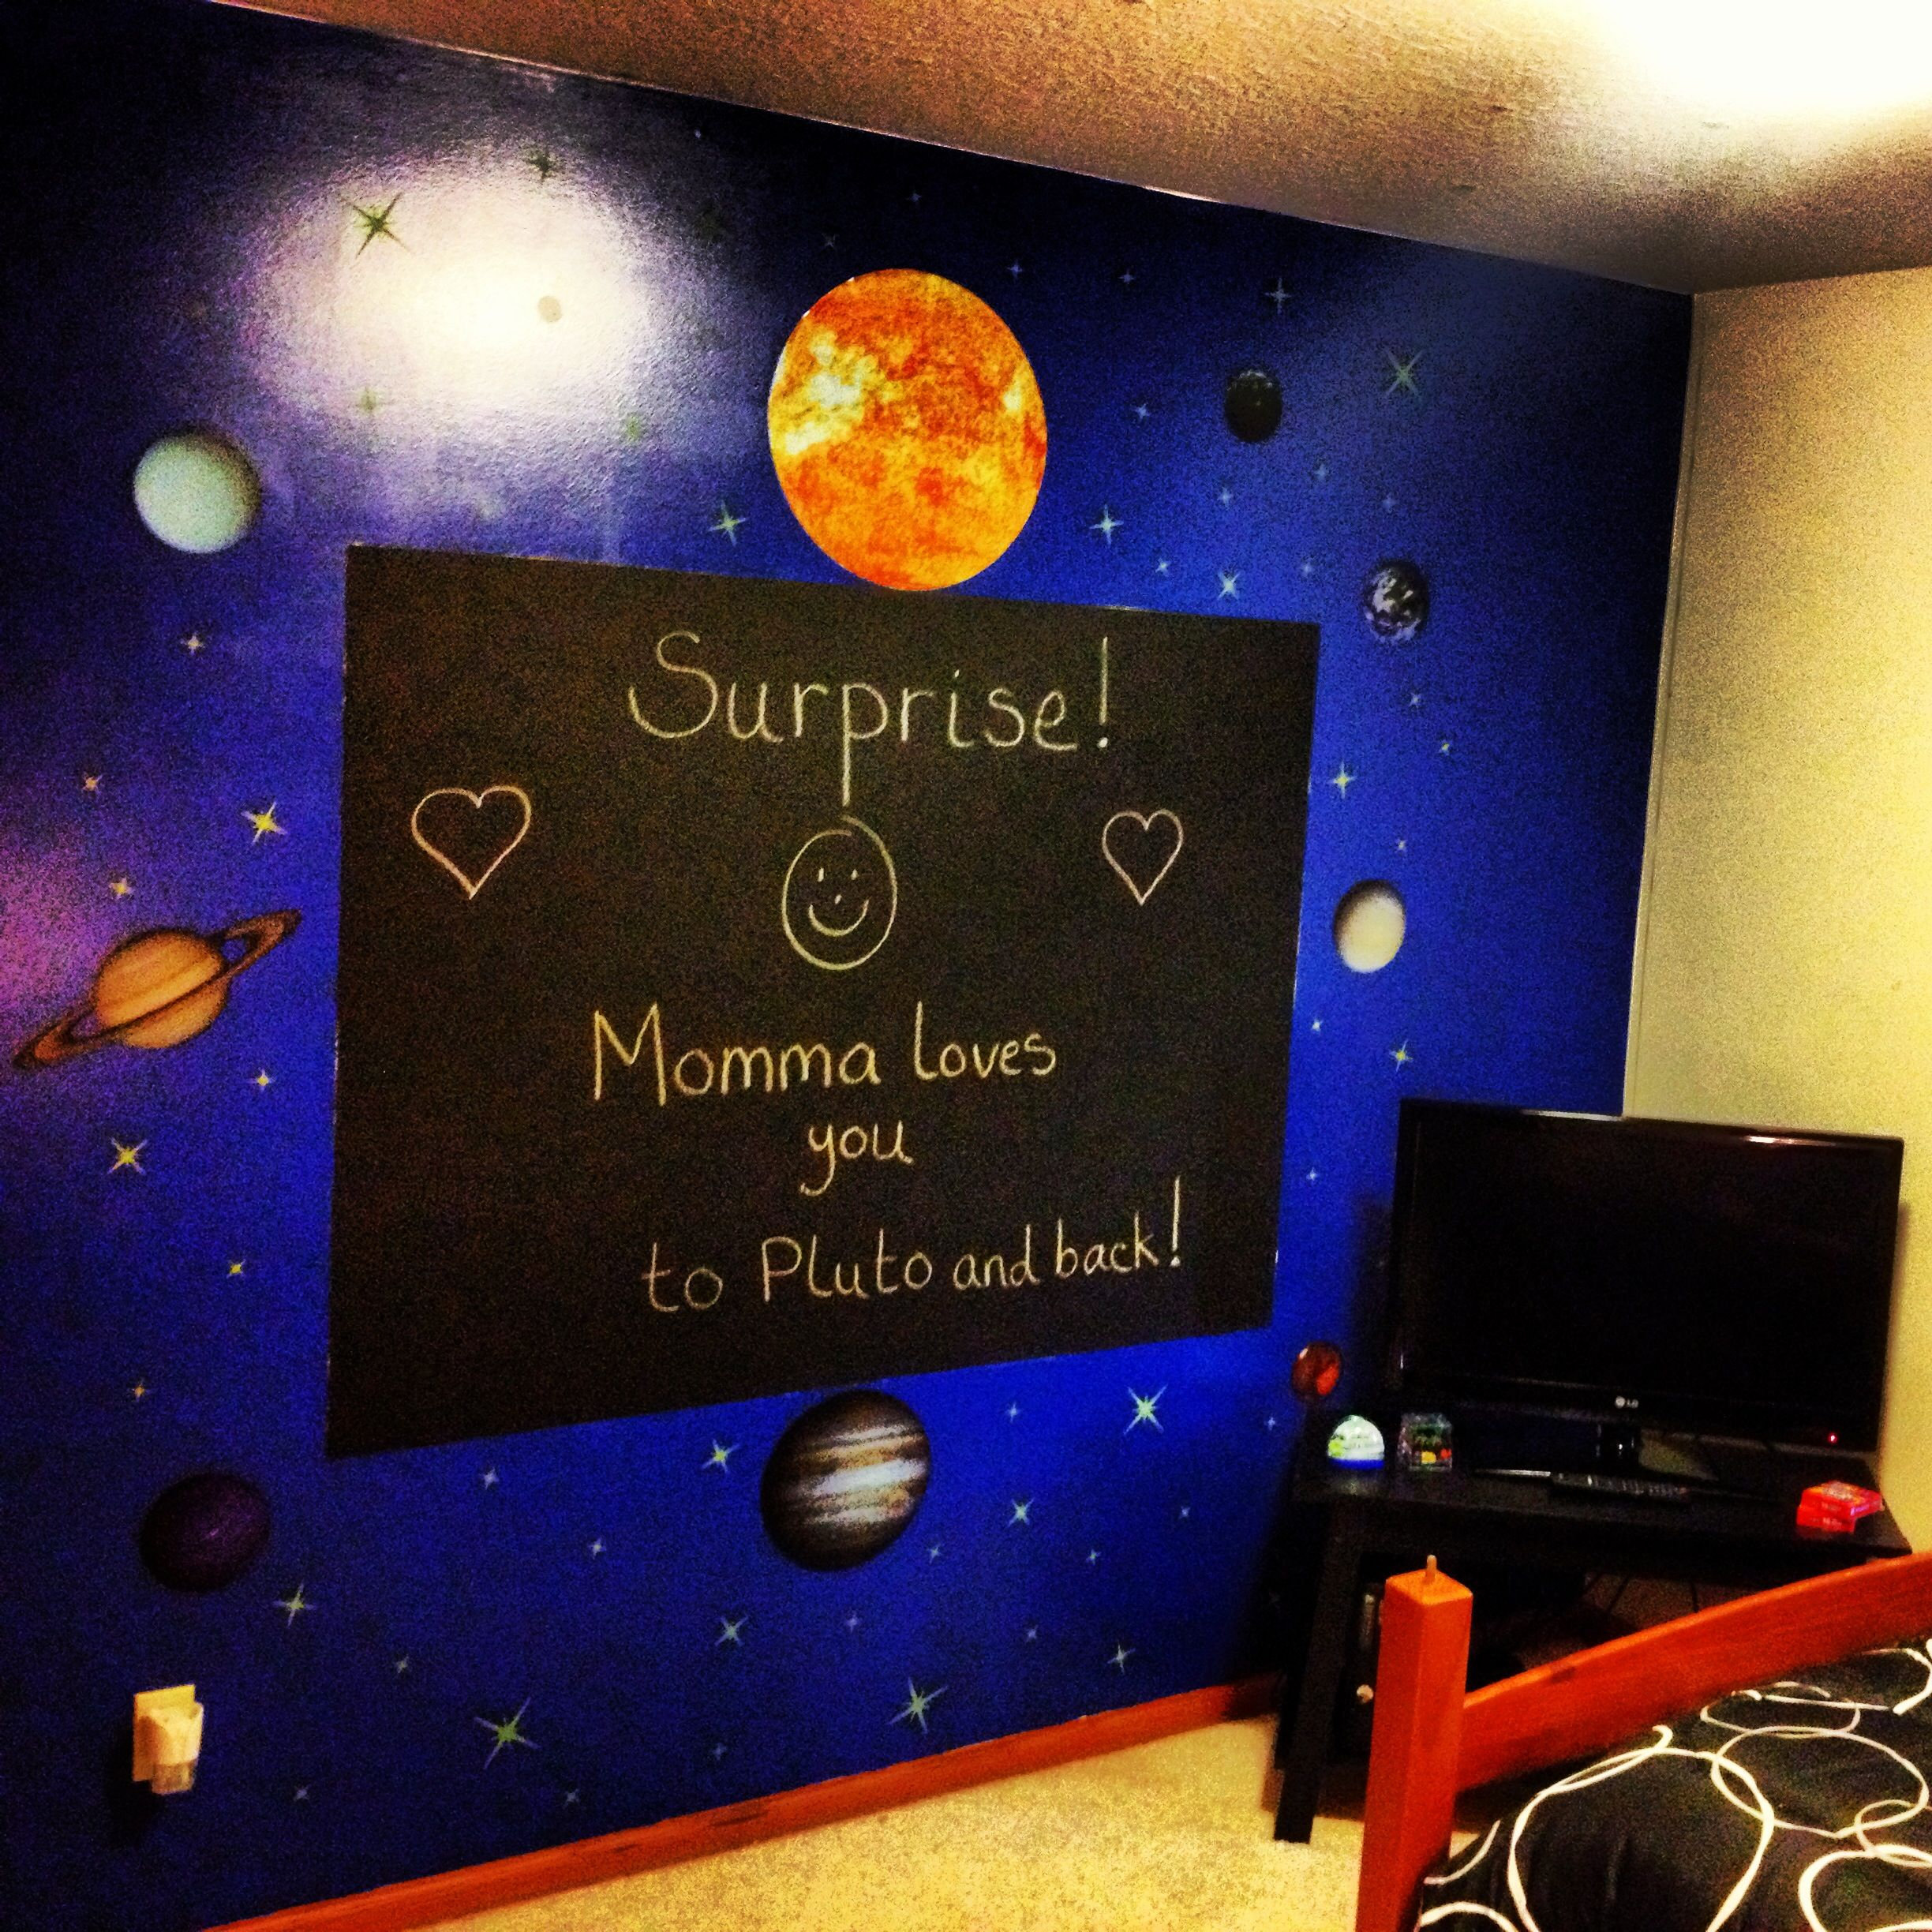 Solar System Bedroom Theme Using Black Chalkboard Paint And Wall Clings The Stars Glow In